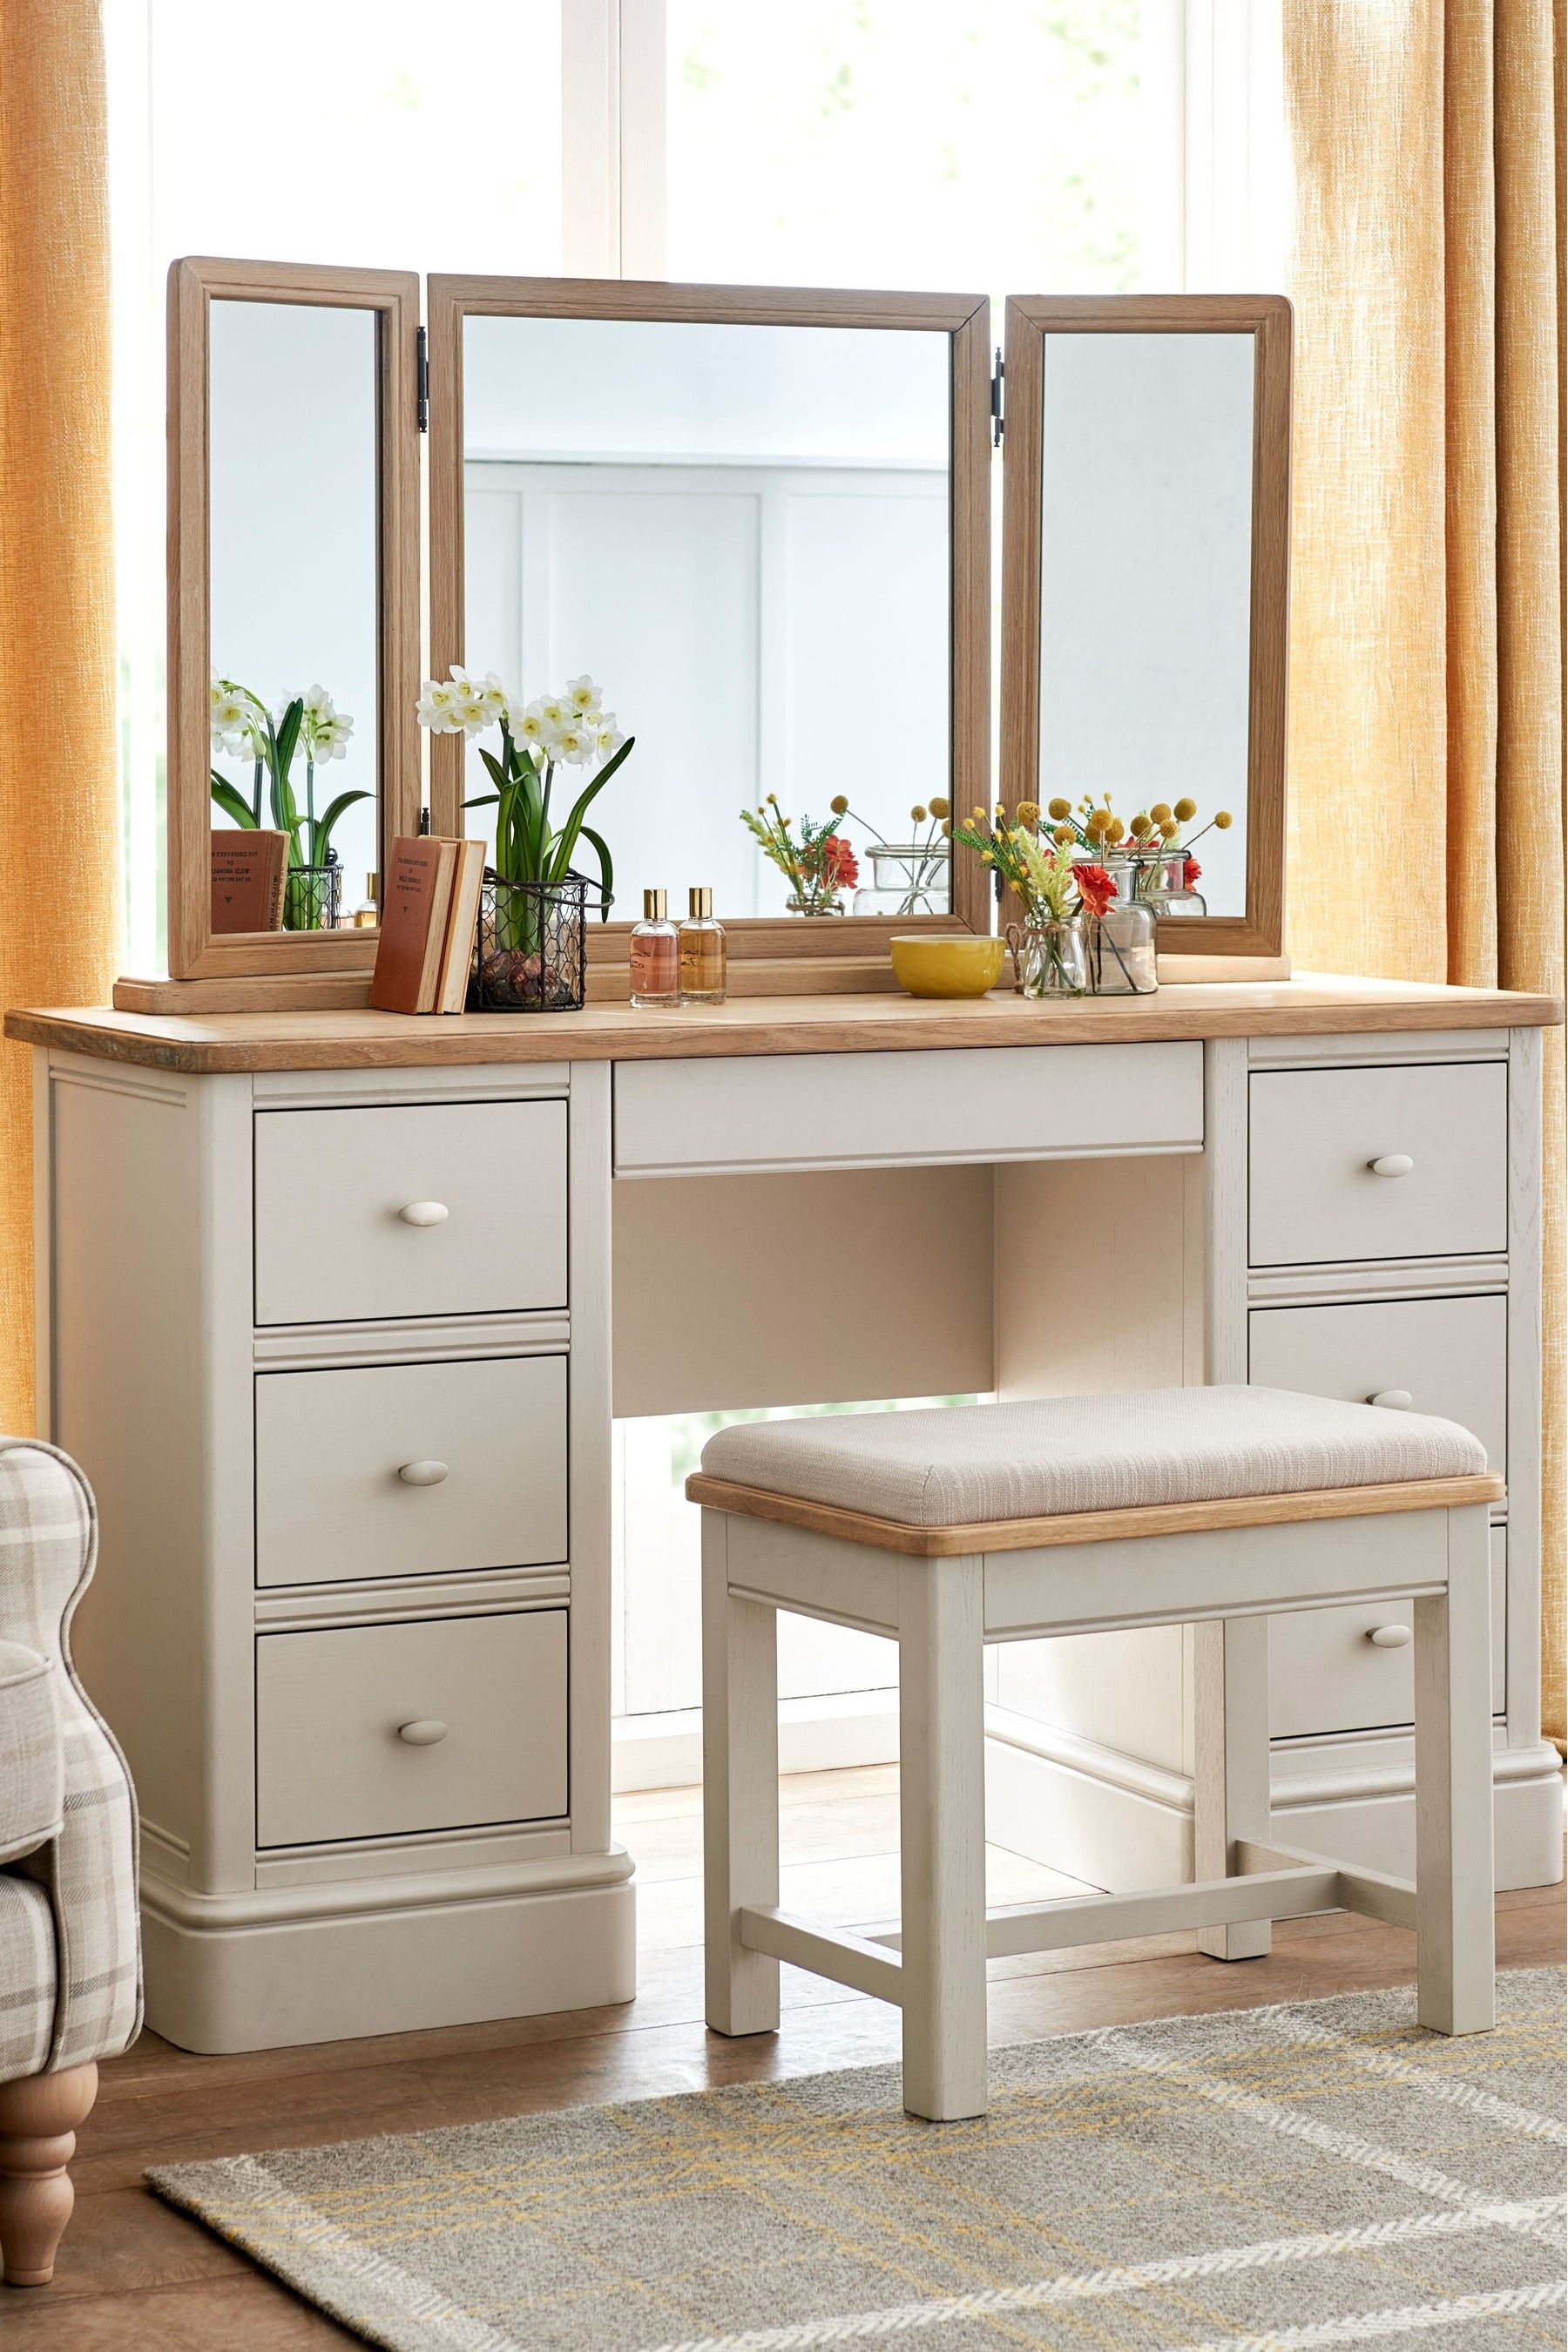 Dressing Table For Sale Near Me